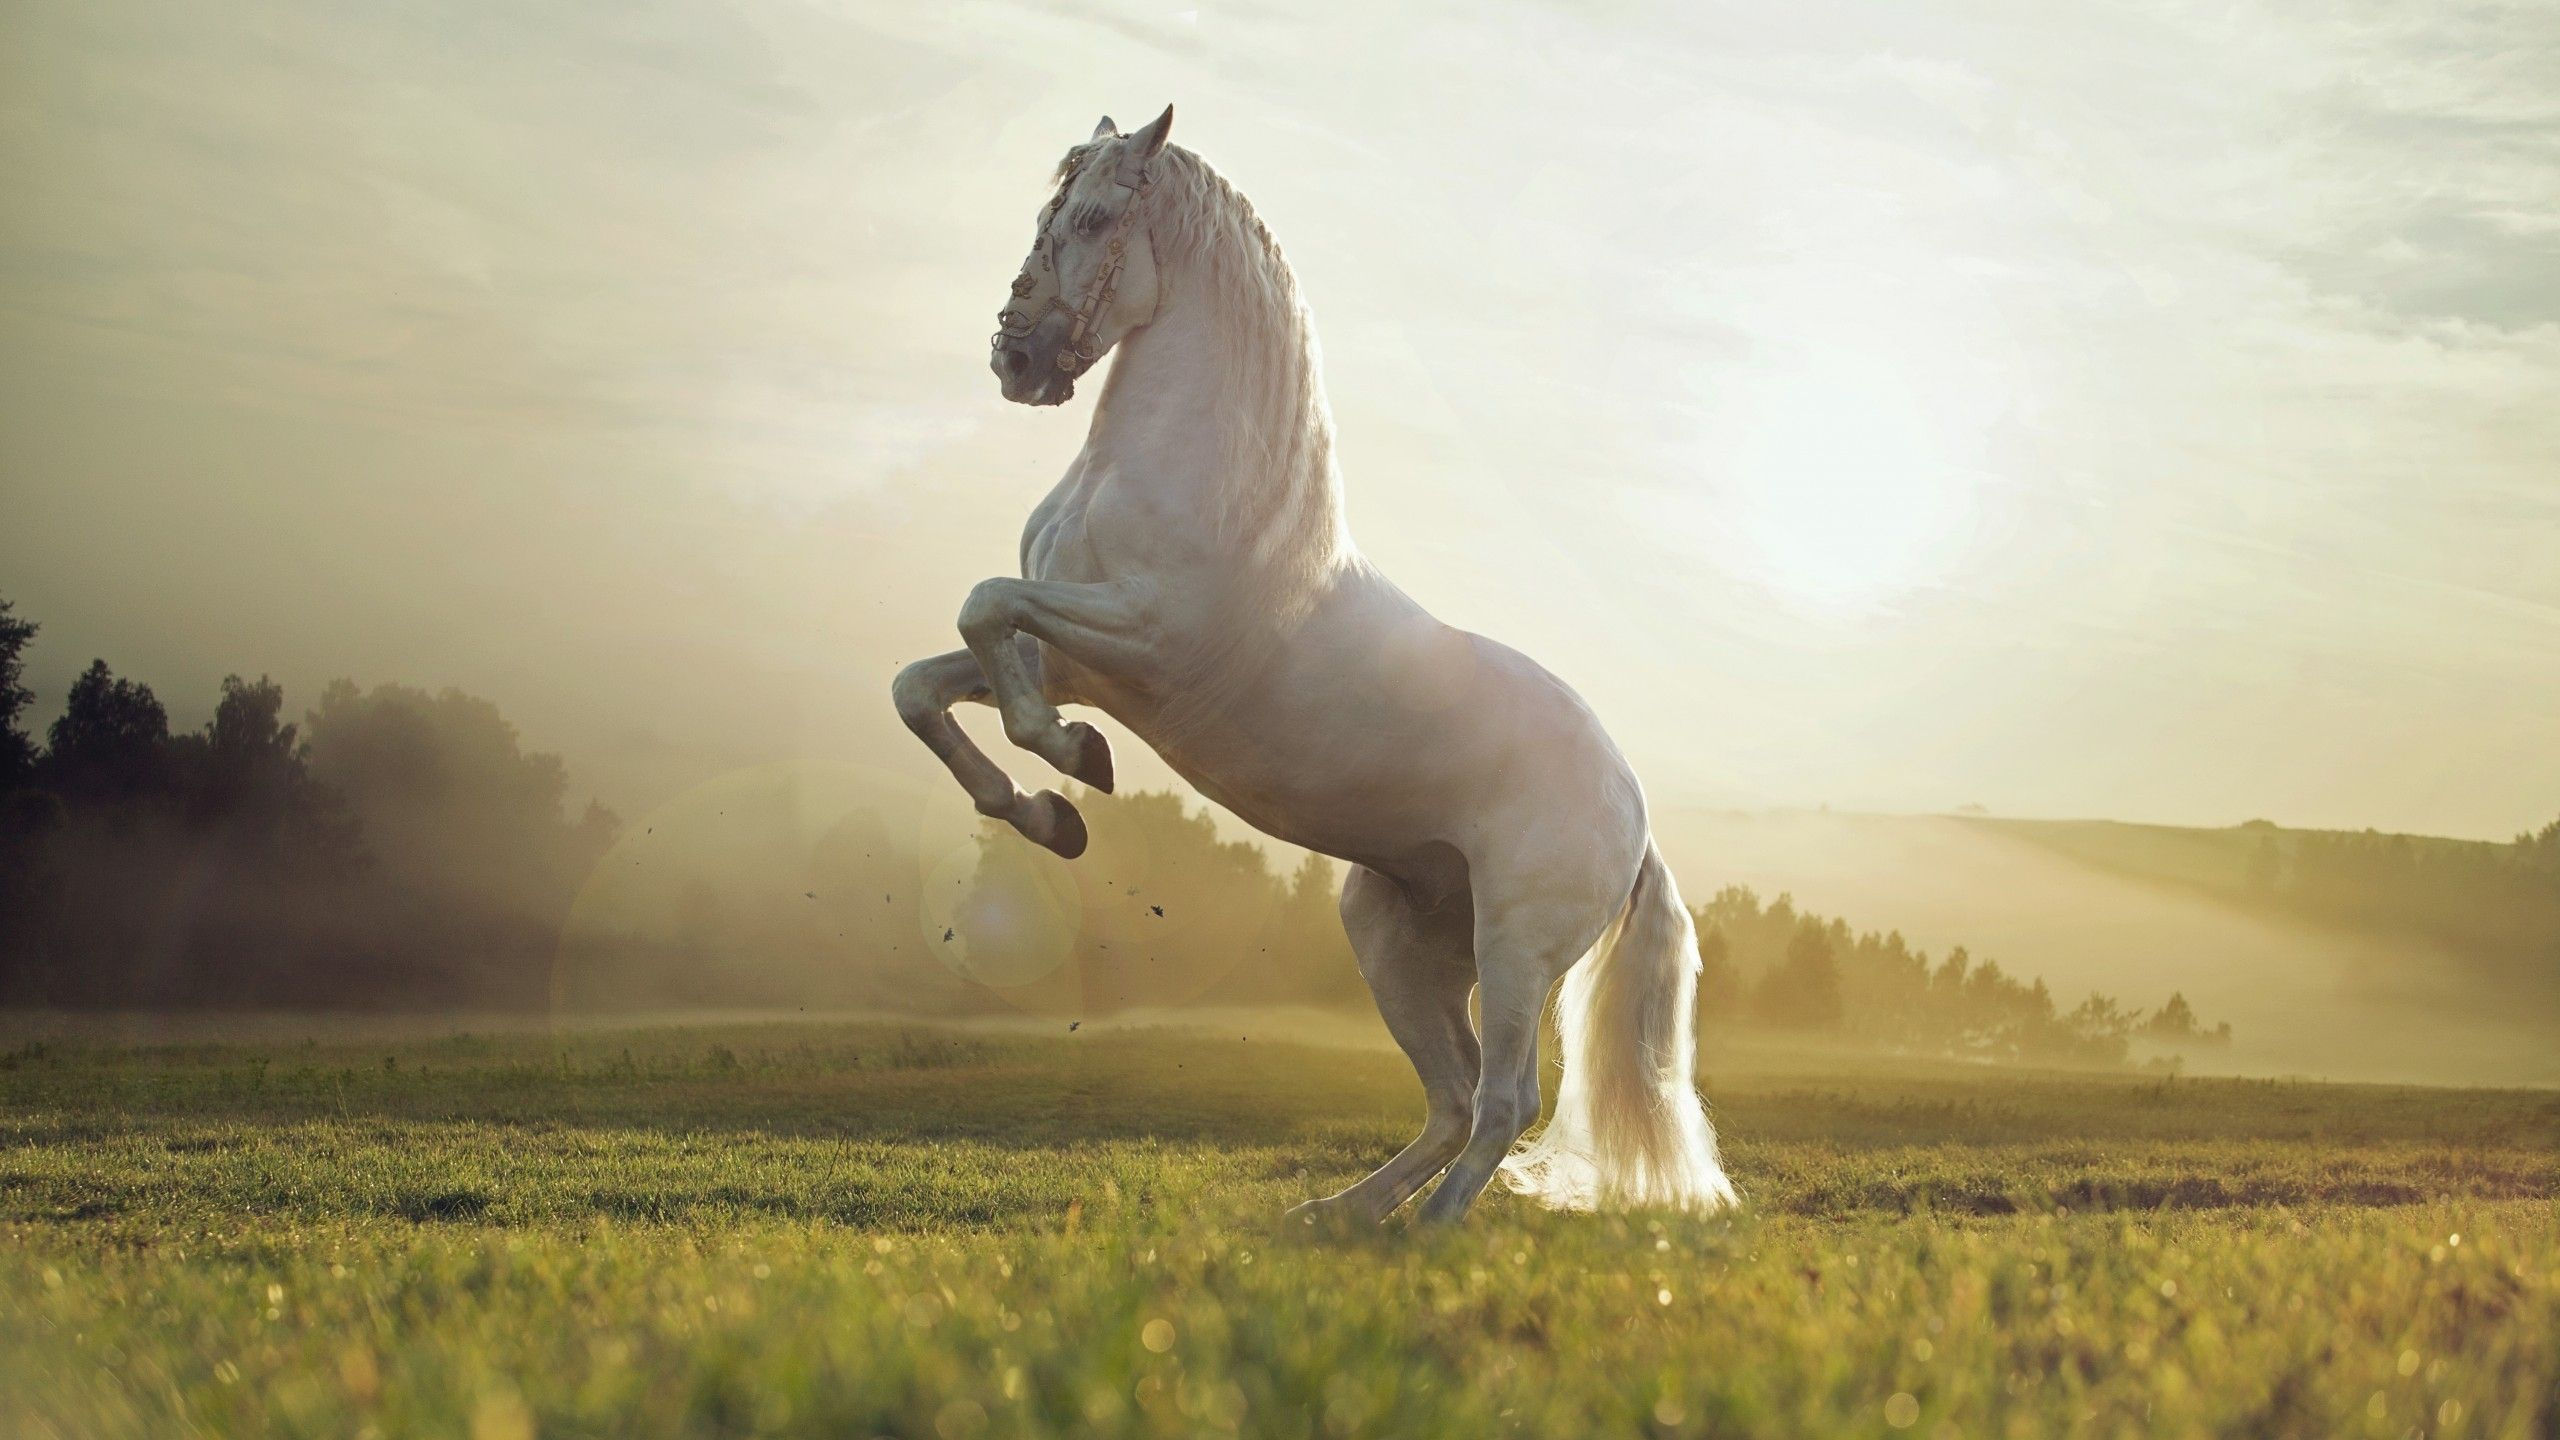 Must see Wallpaper Horse Iphone - cf5140dc44180aea3578086a39f1be3c  Graphic_48259.jpg